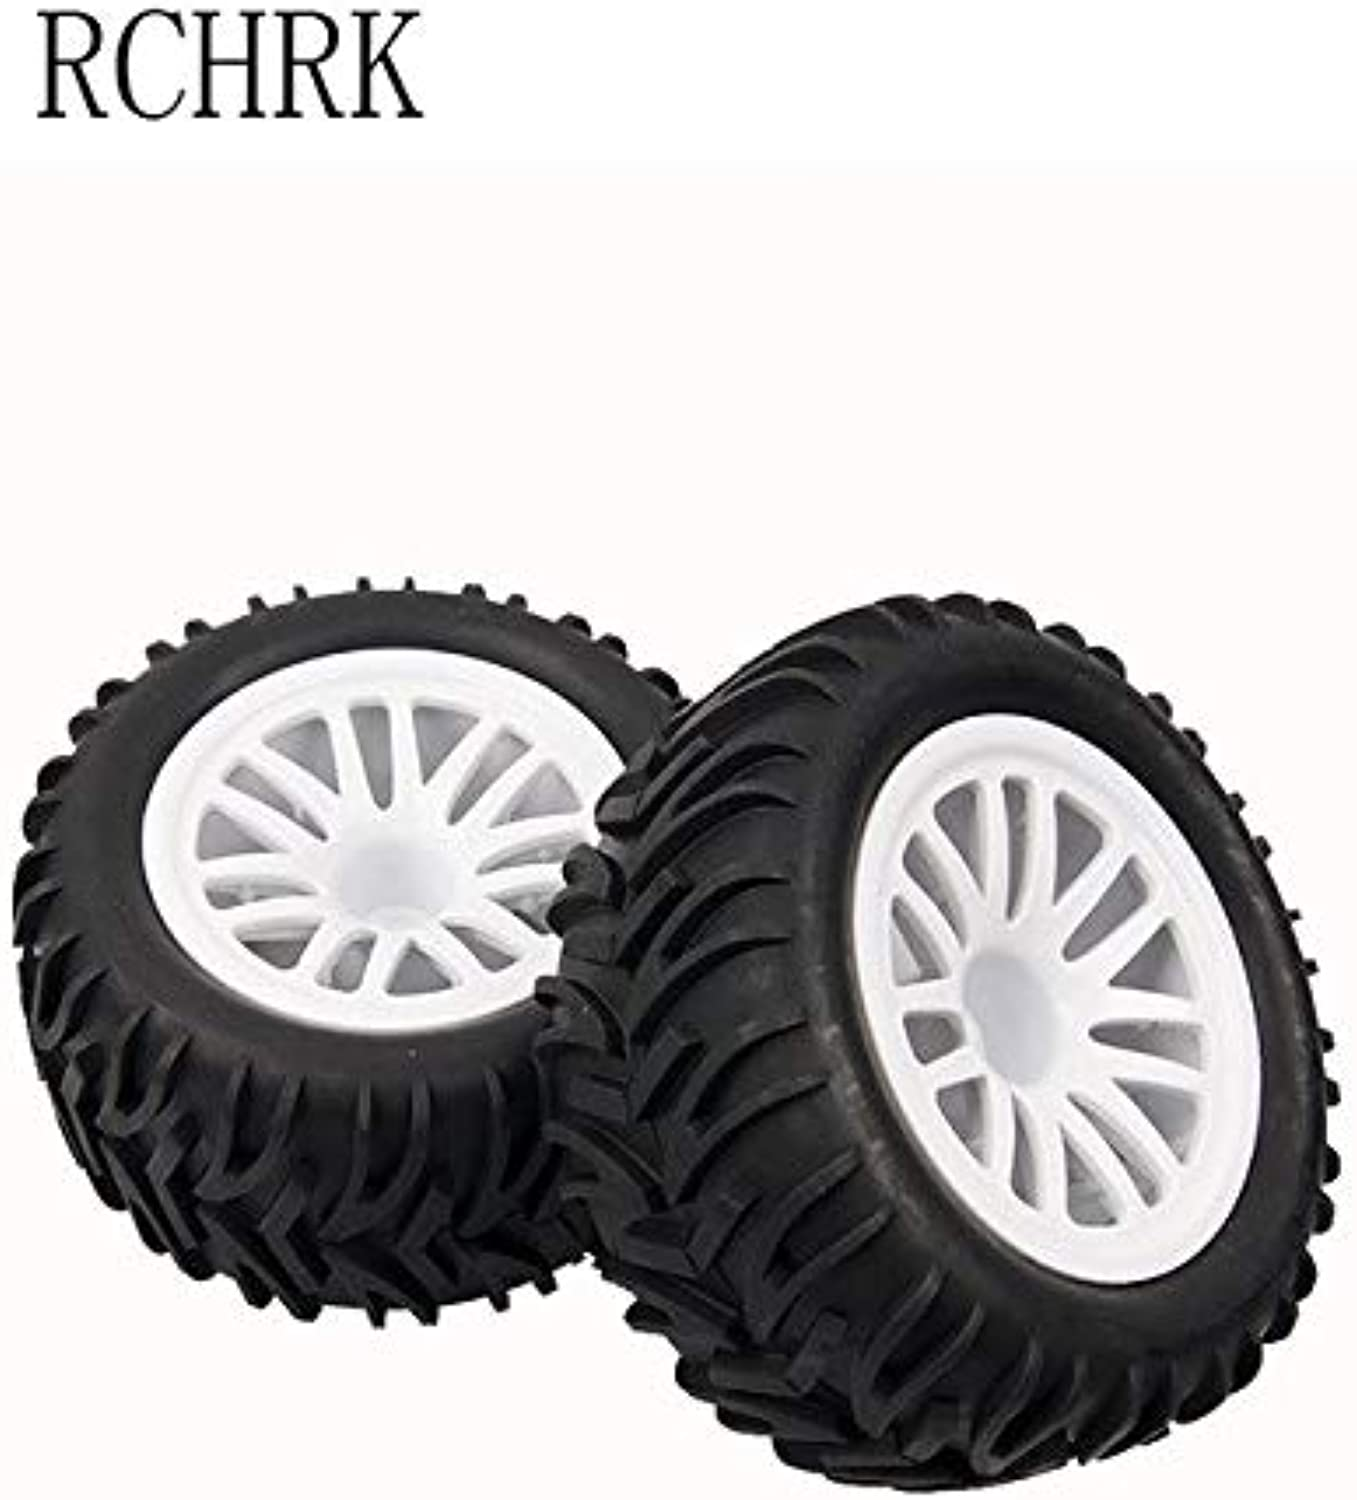 2pcs Rubber Wheel Big Wheel Tire 115mm Wide 55mm Hexagon Combined with 12mm Truck Tire Fit Rc car hsp 1 10 94111 94188 94108   White